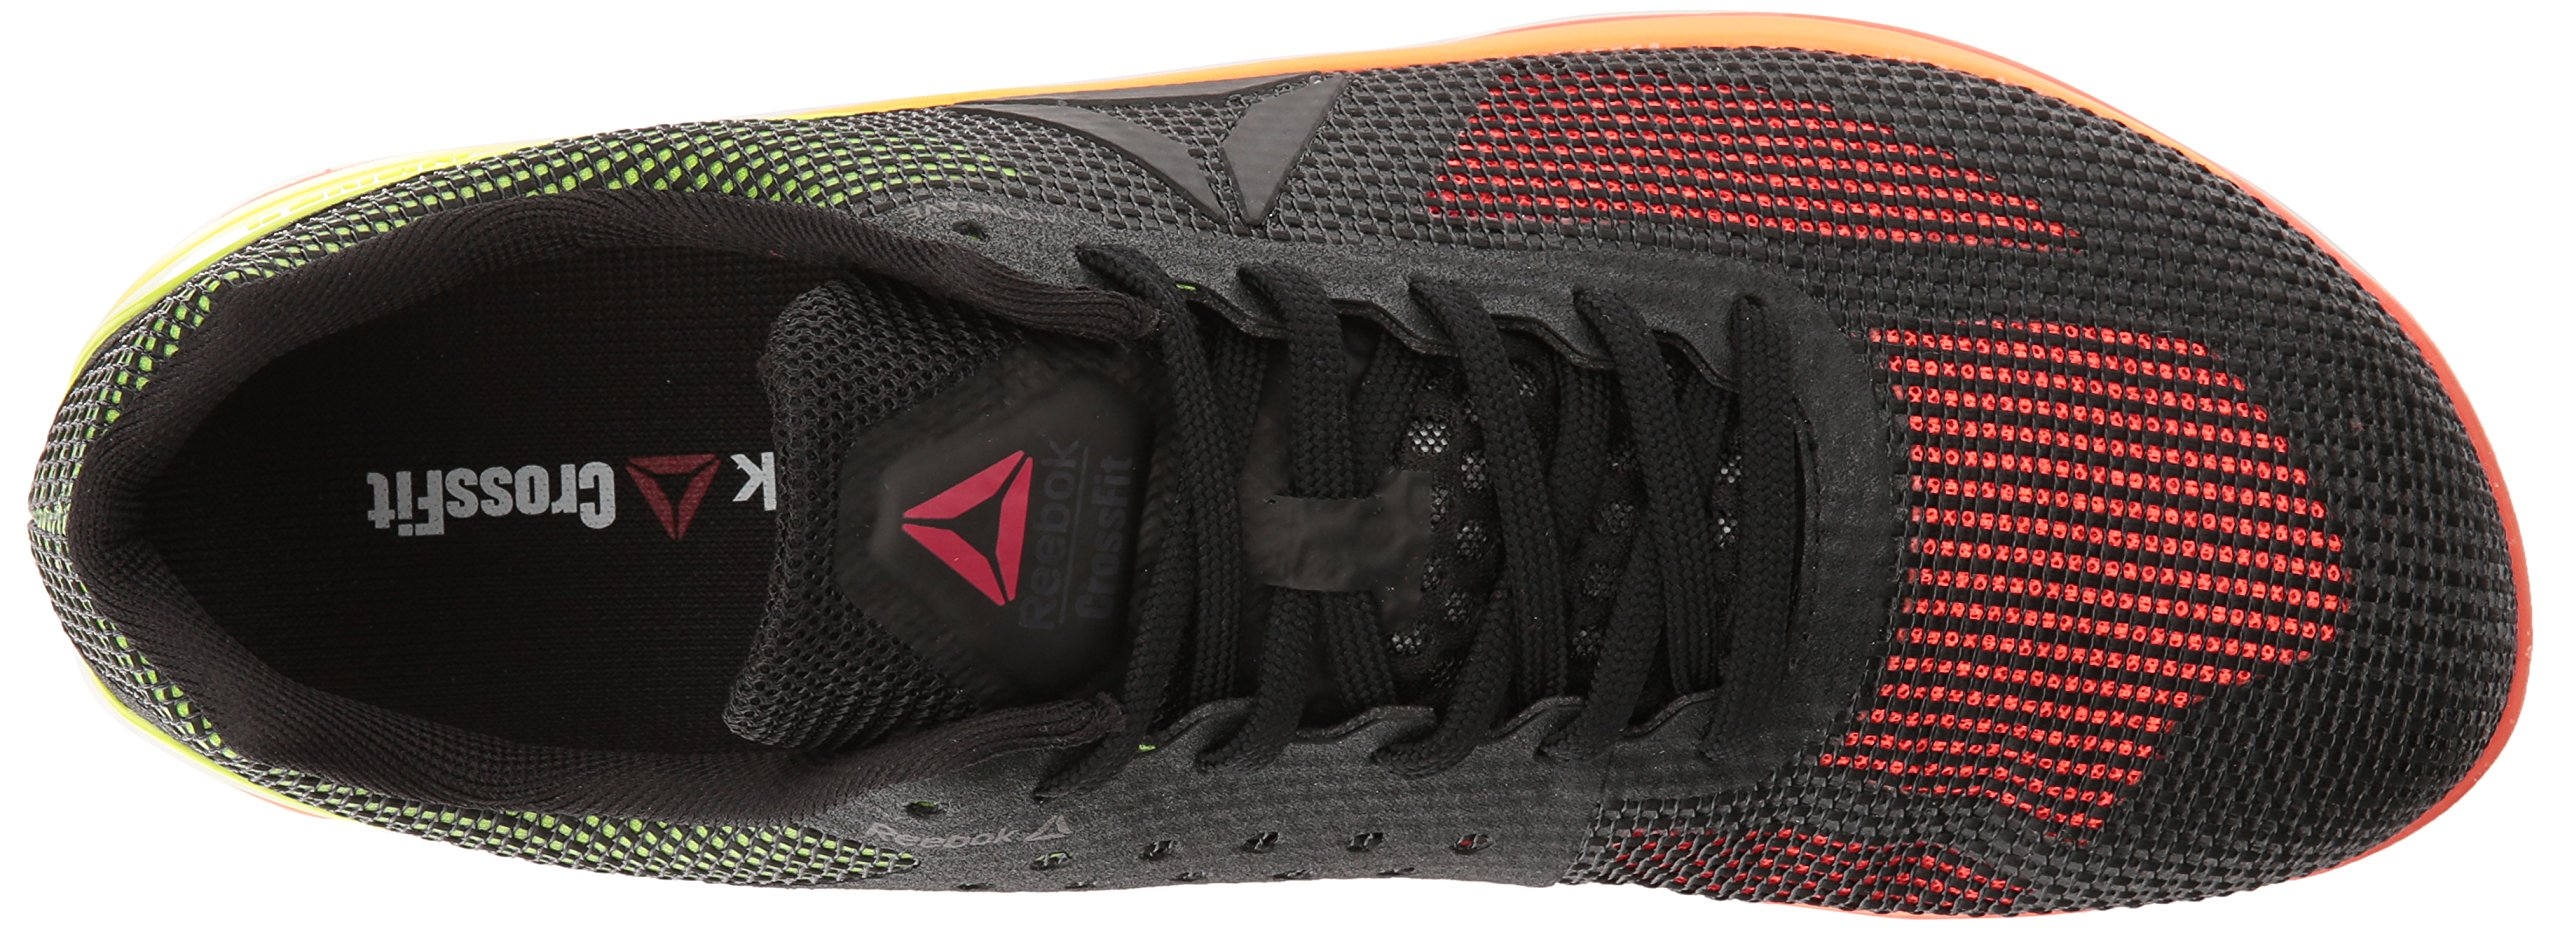 new products 674b6 bd66a Reebok Men s CROSSFIT Nano 7.0 Cross-Trainer Shoe, Vitamin C Solar  Yellow Black, 8 M US - BD2829   Sports   Fitness Features   Sports    Outdoors - tibs